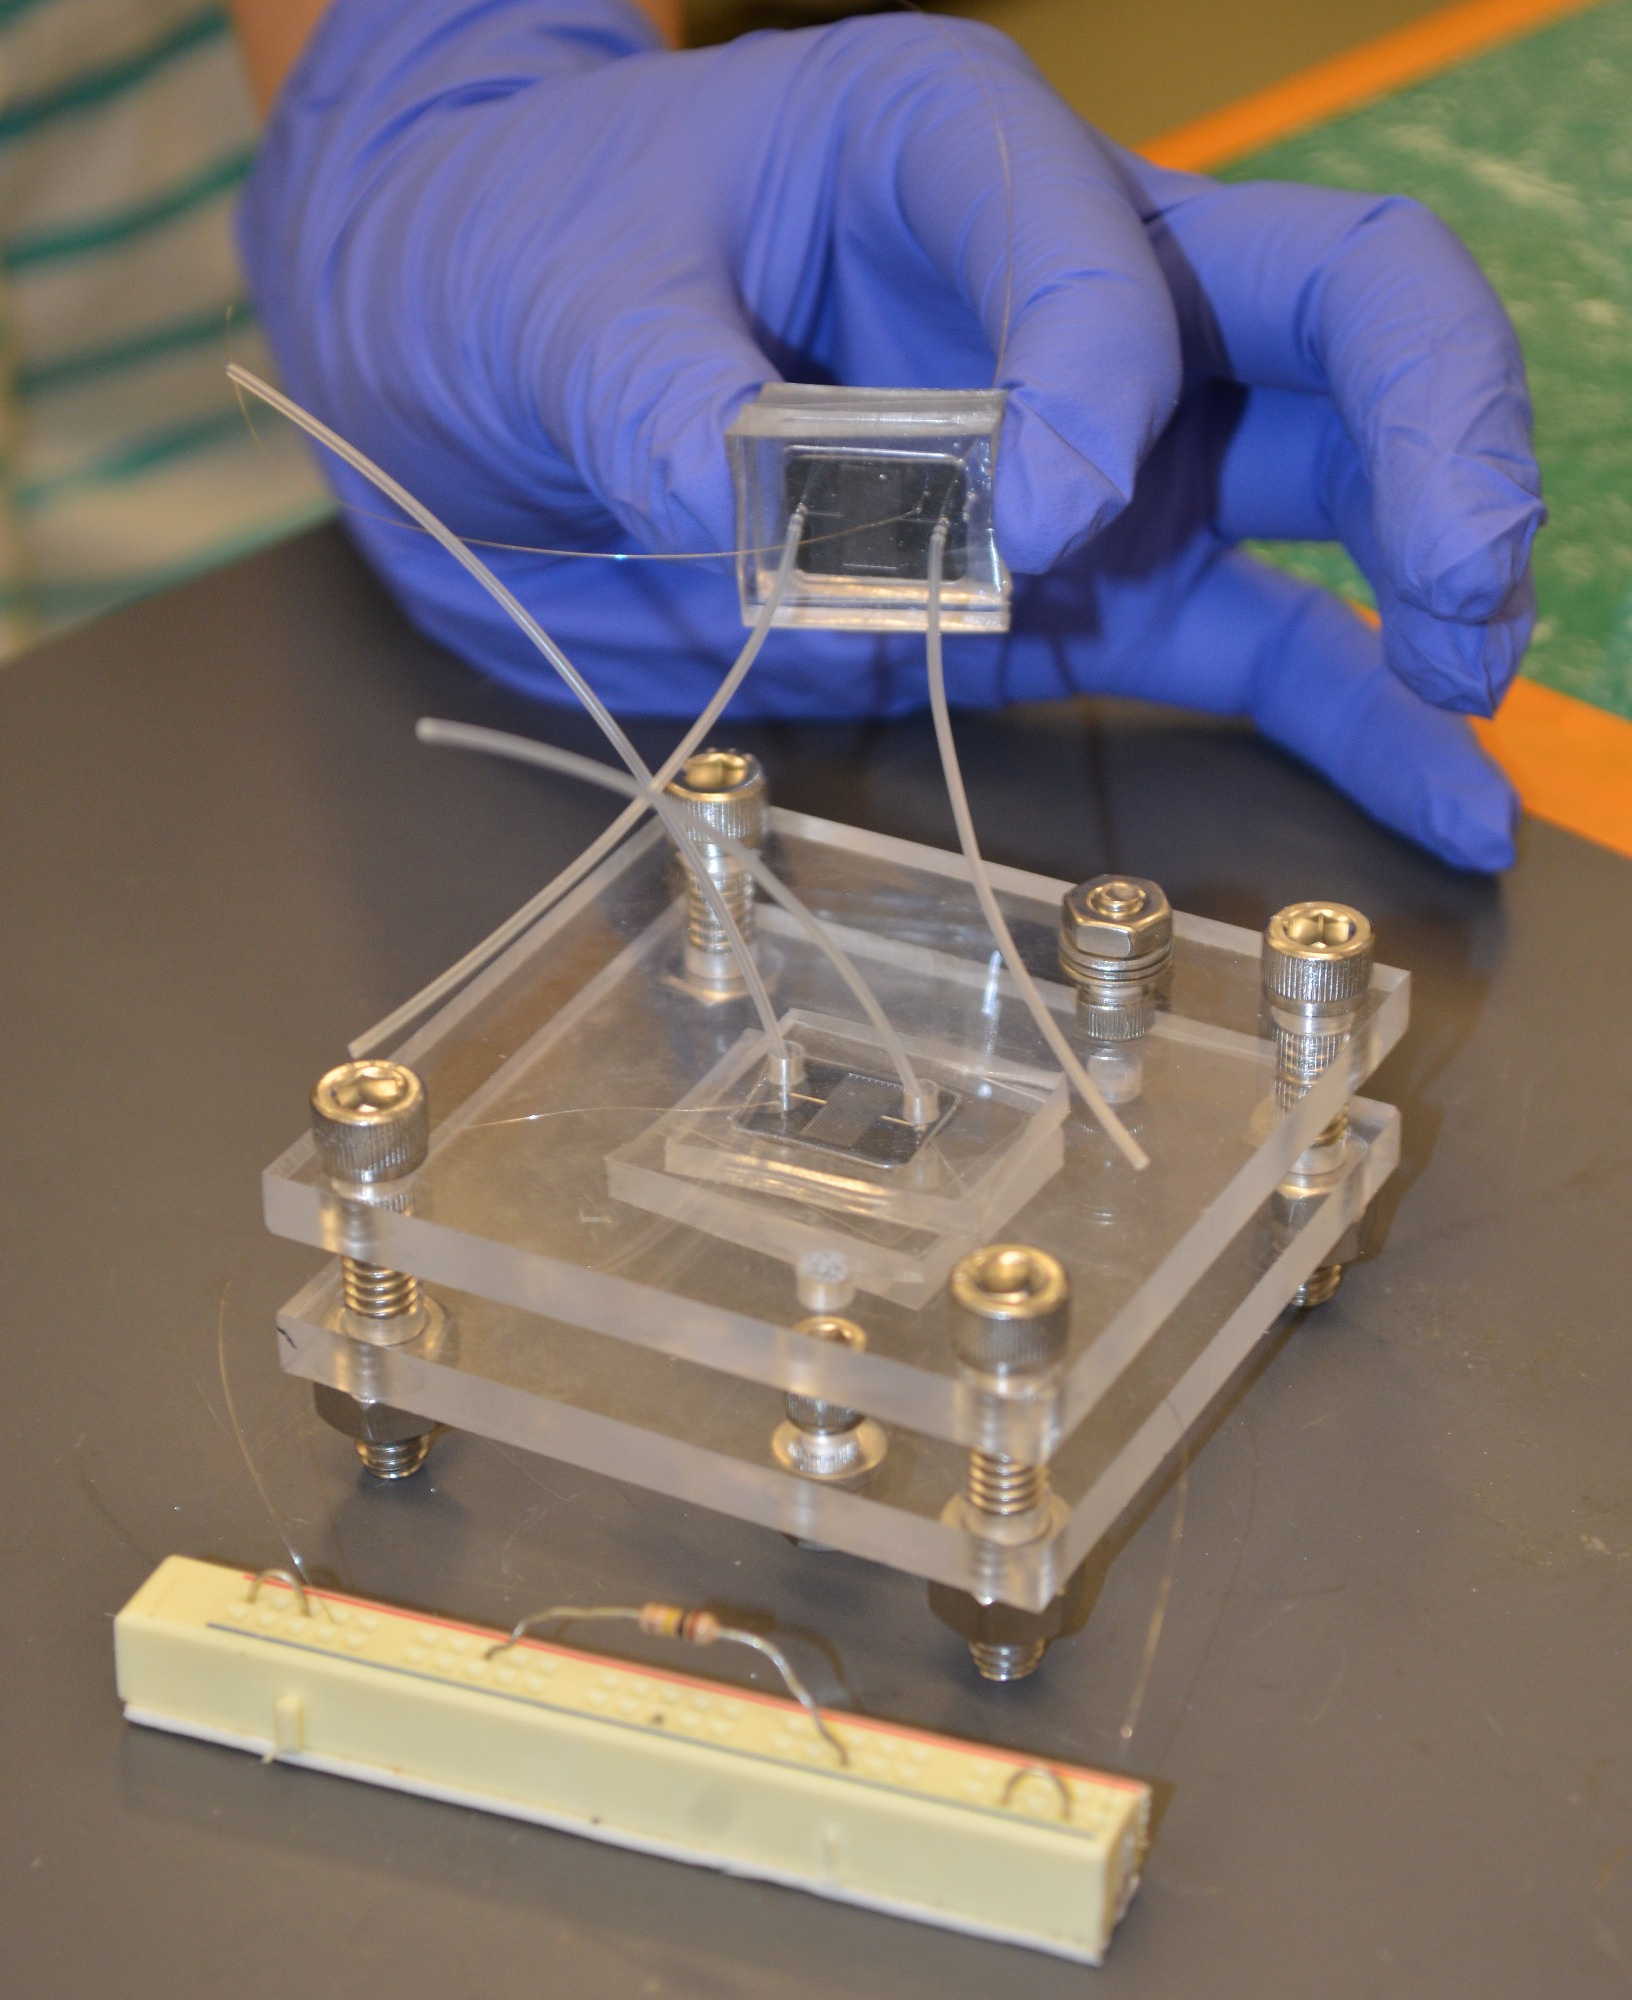 Development of a microfluidic microbial fuel cell